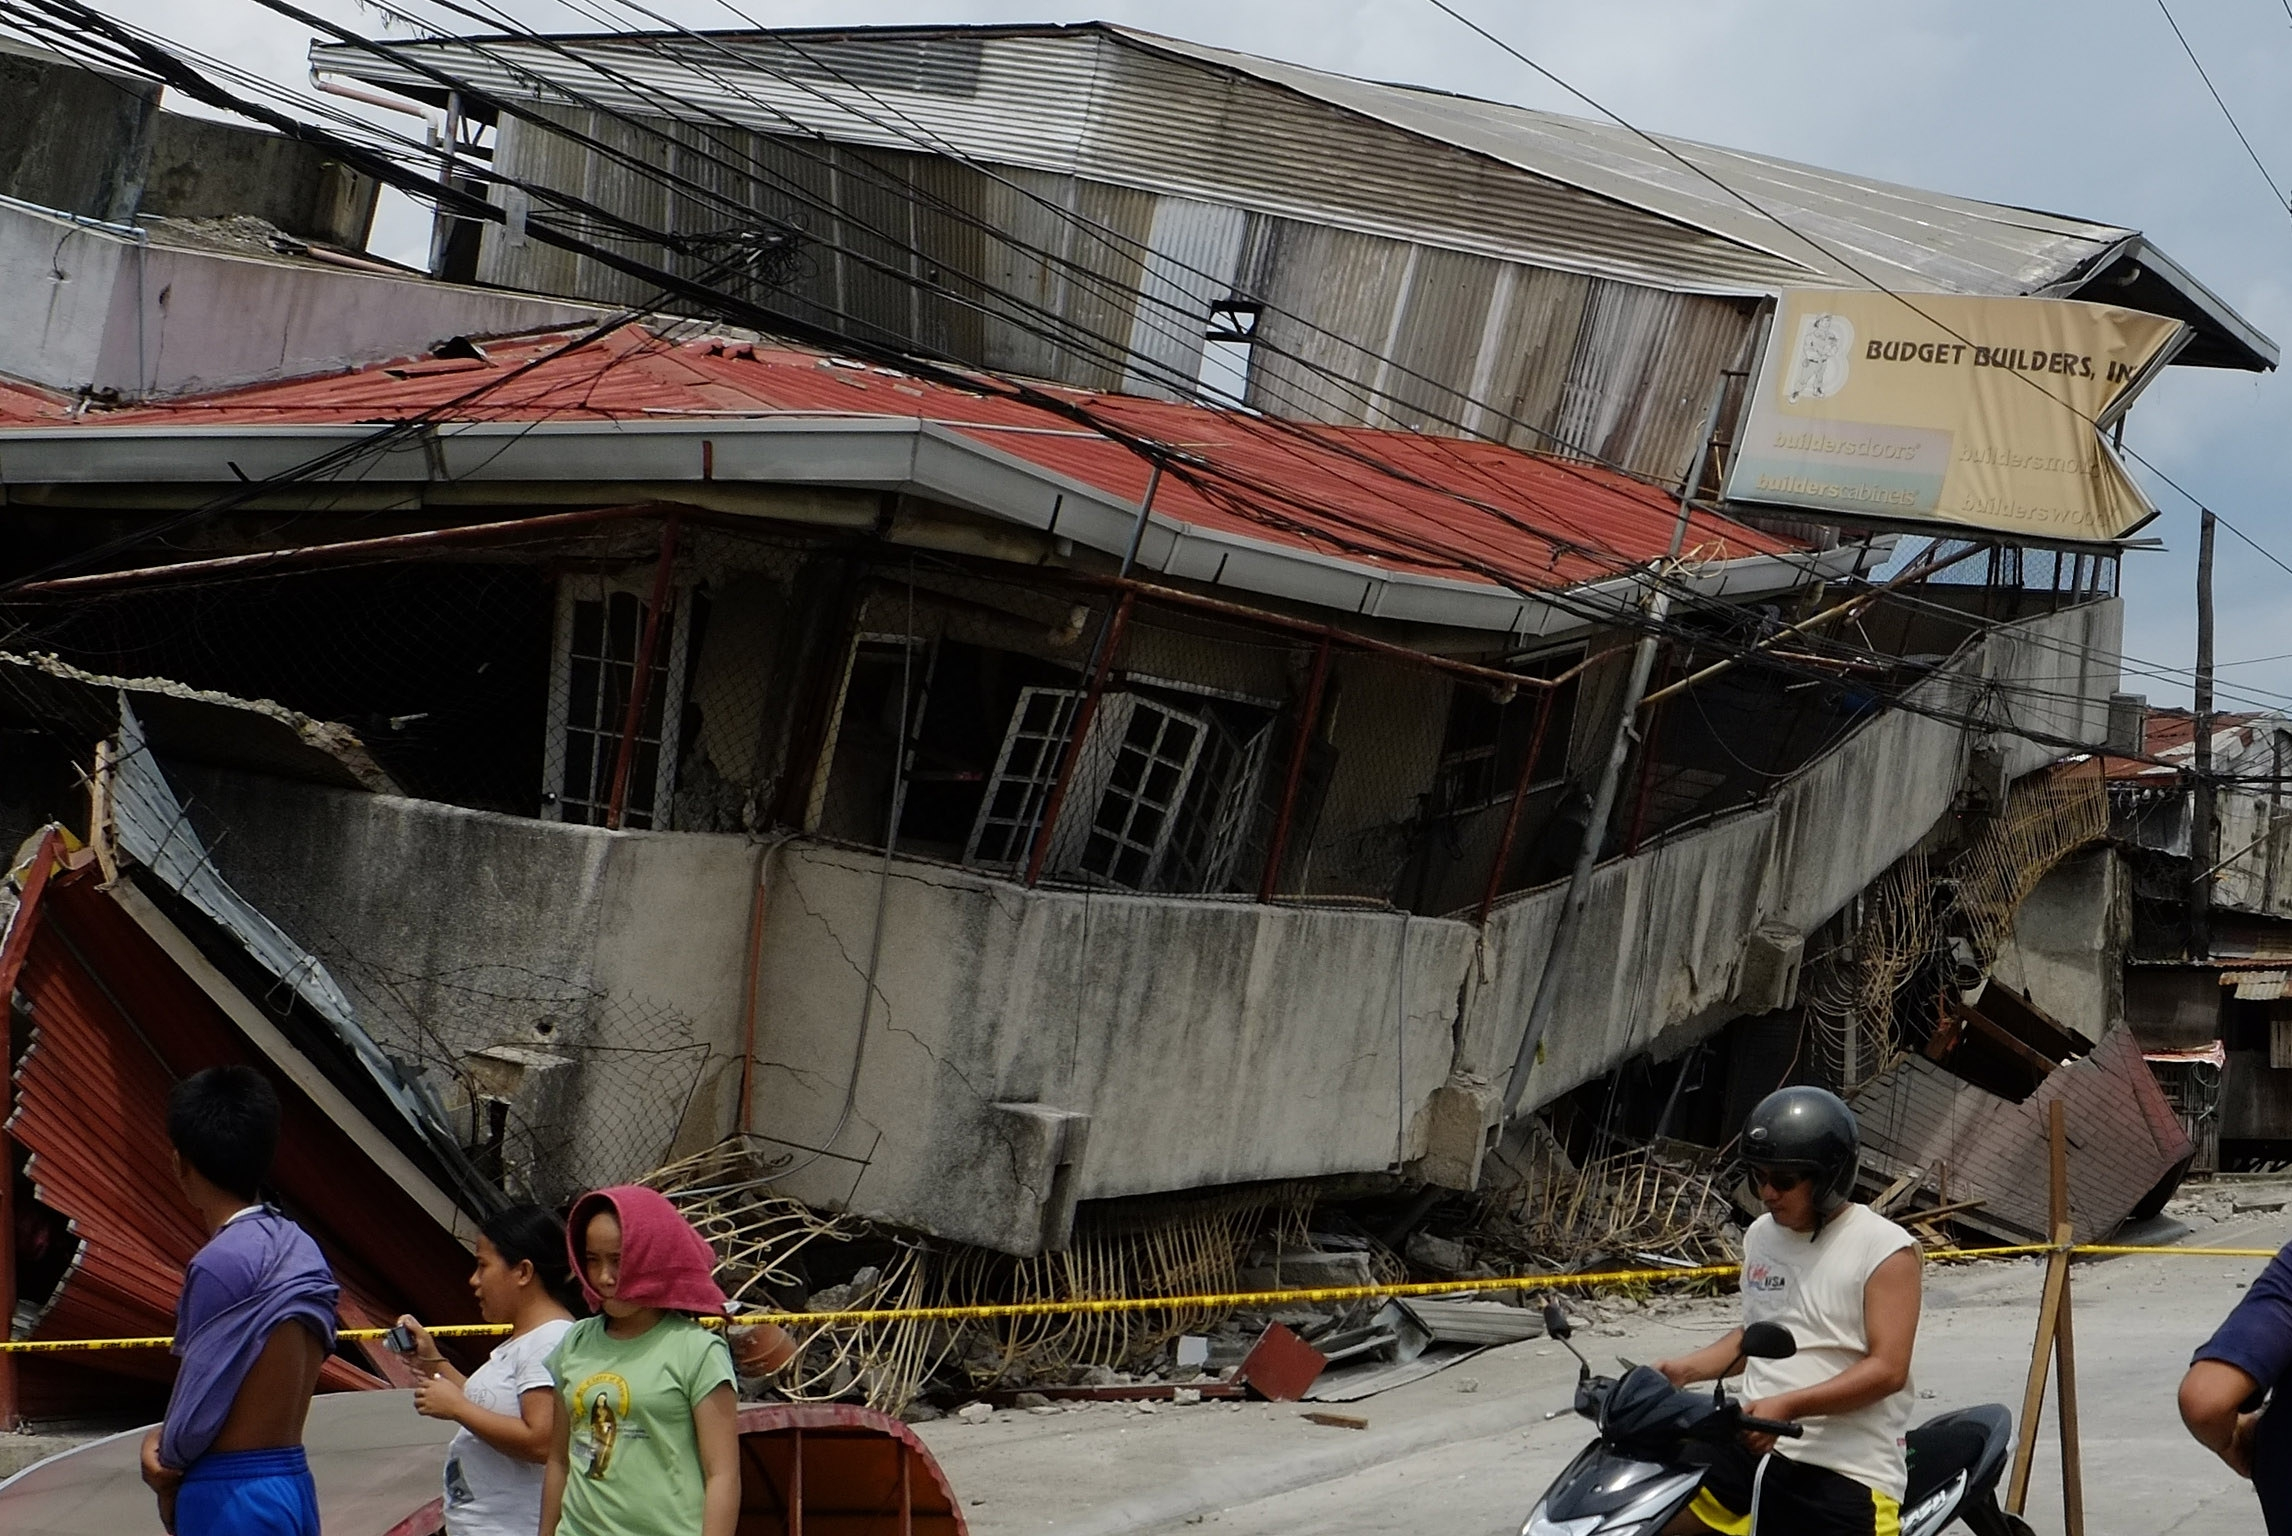 Residents walk past a damaged structure in Cebu, Philippines, Tuesday. A 7.2-magnitude earthquake struck in the central Philippines on Tuesday morning, killing at least 67 people and injuring hundreds.